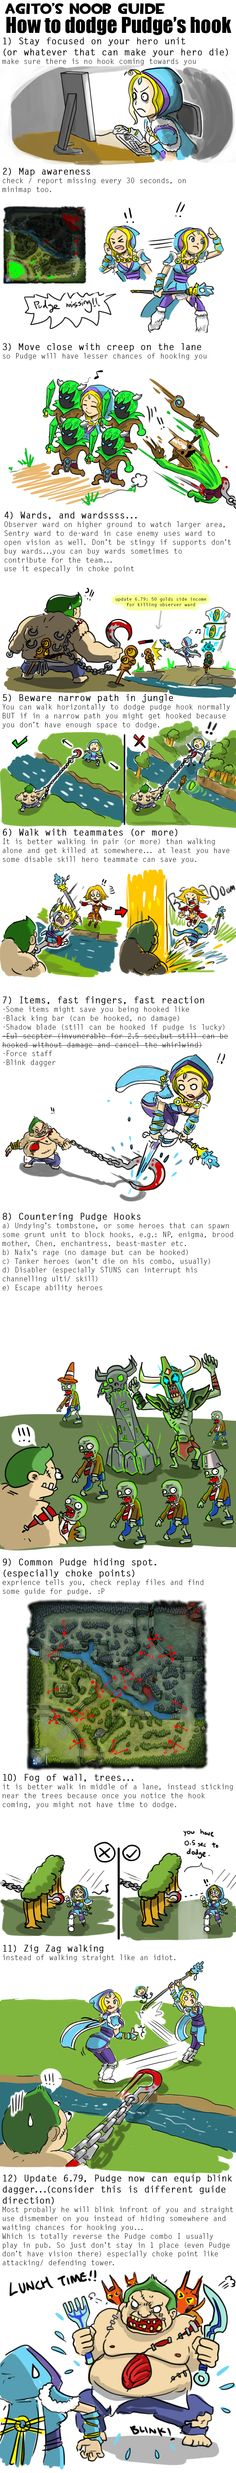 0479: How to dodge pudge hook guide by Agito666 on DeviantArt